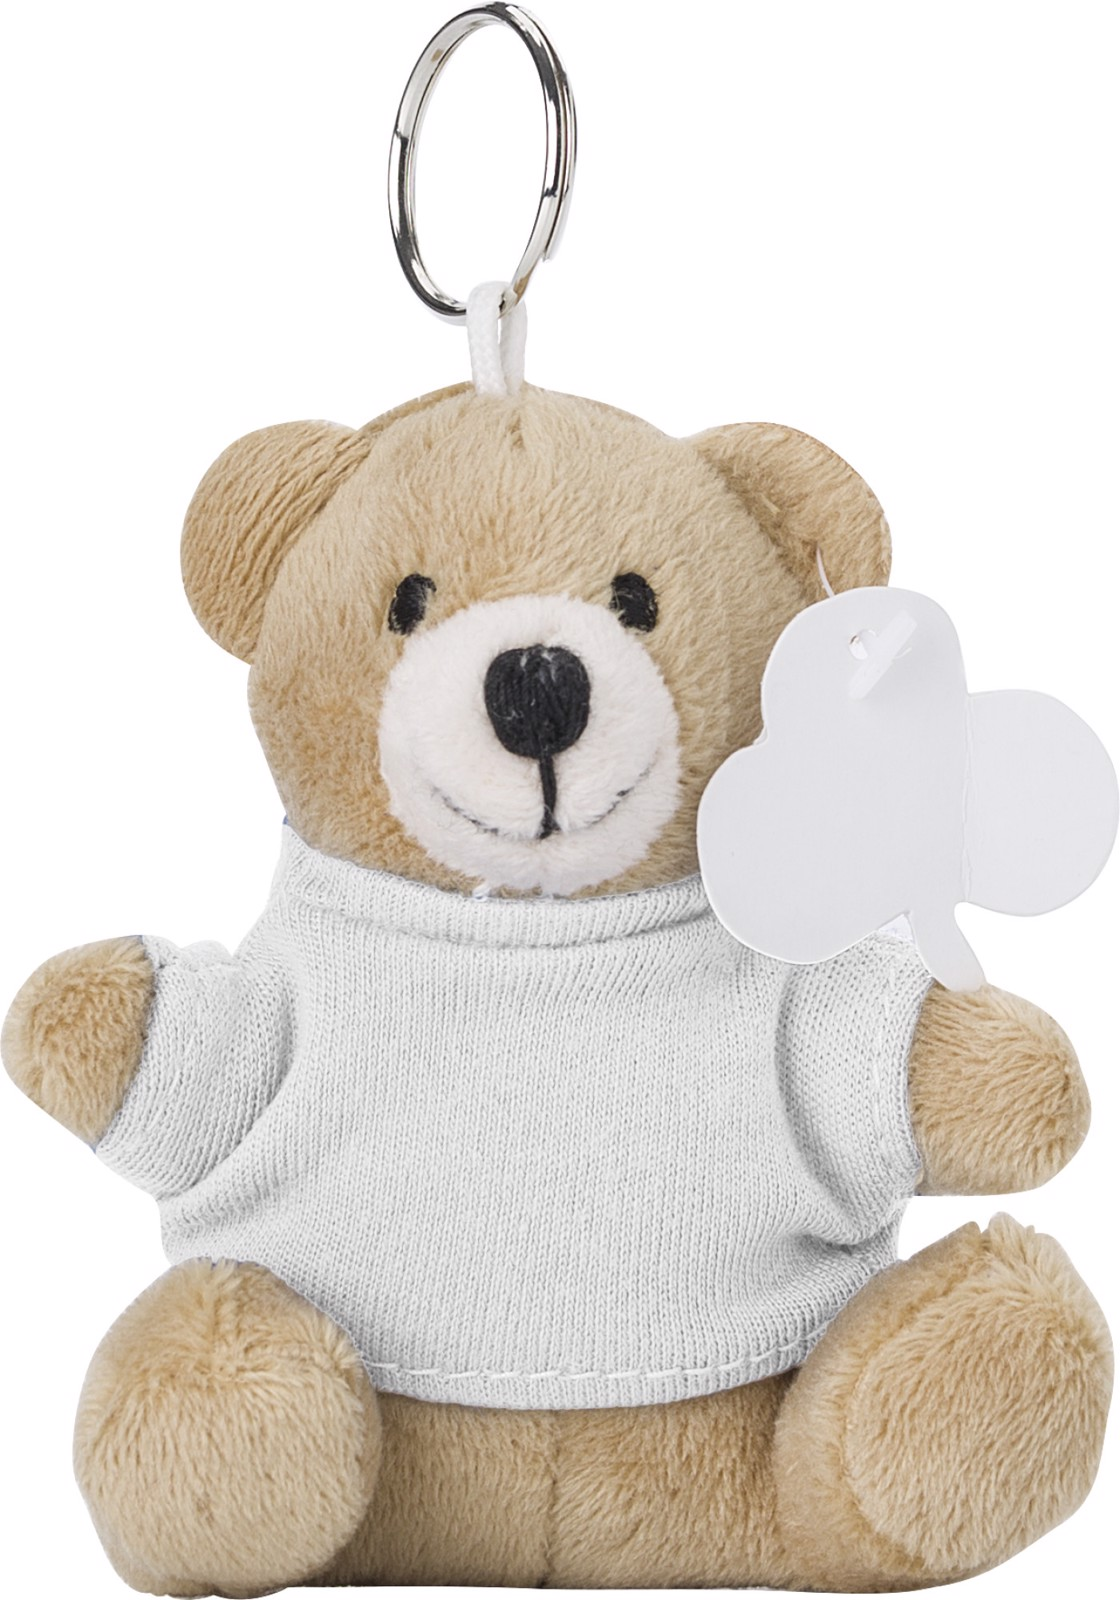 Plush key holder - White